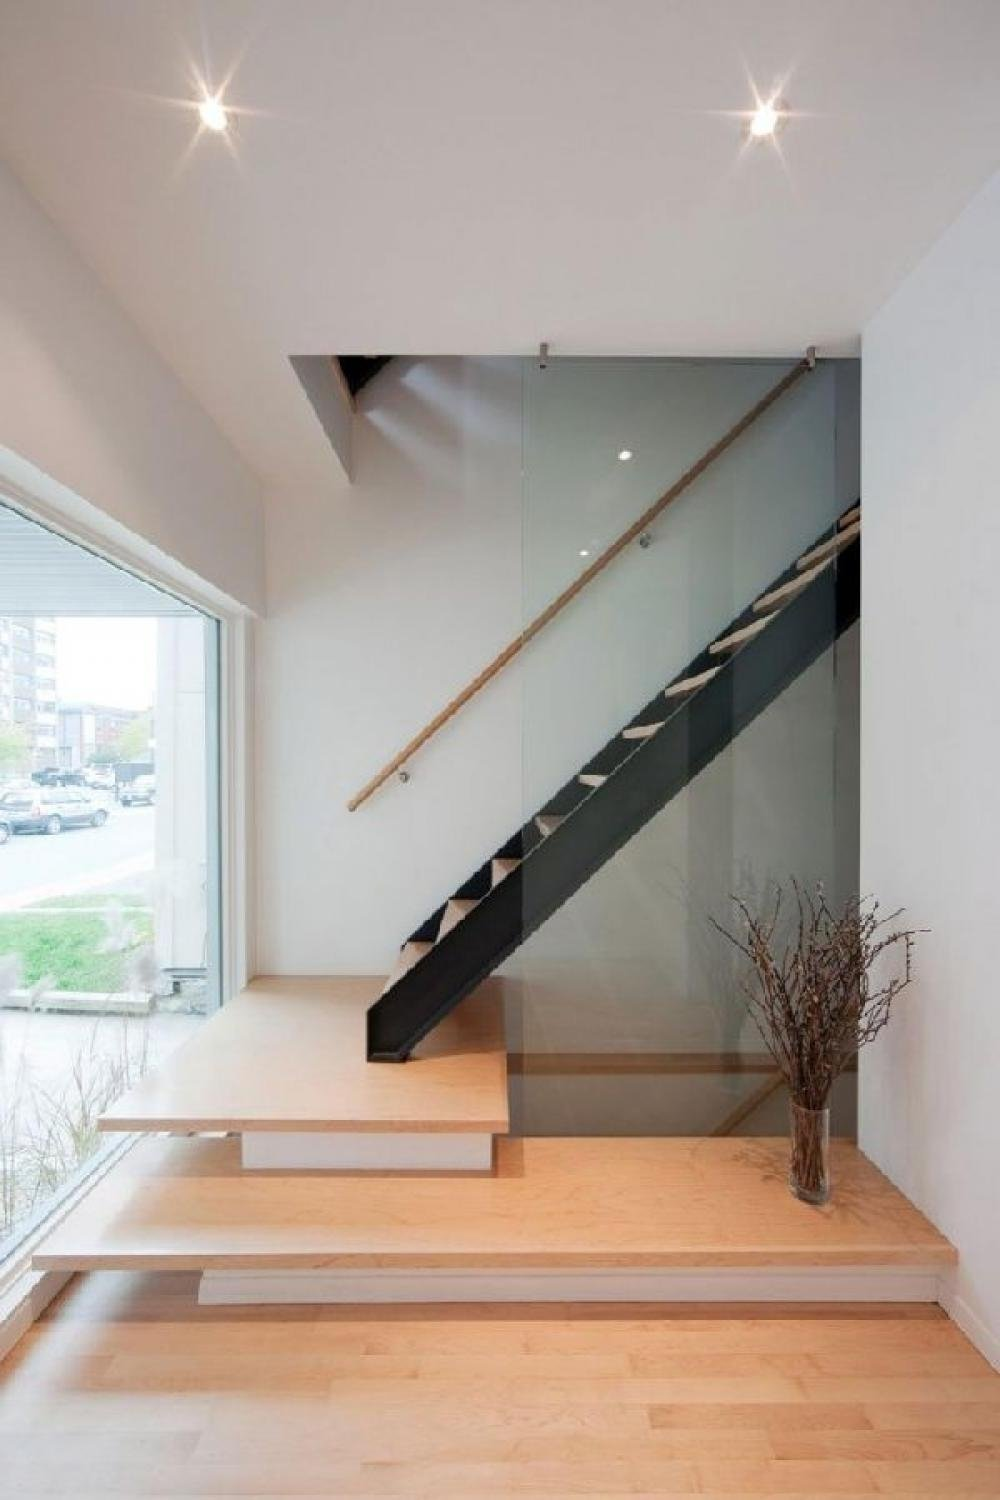 10 Famous Staircase Ideas For Small Spaces fascinating staircase ideas for small spaces staircase ideas for 2020